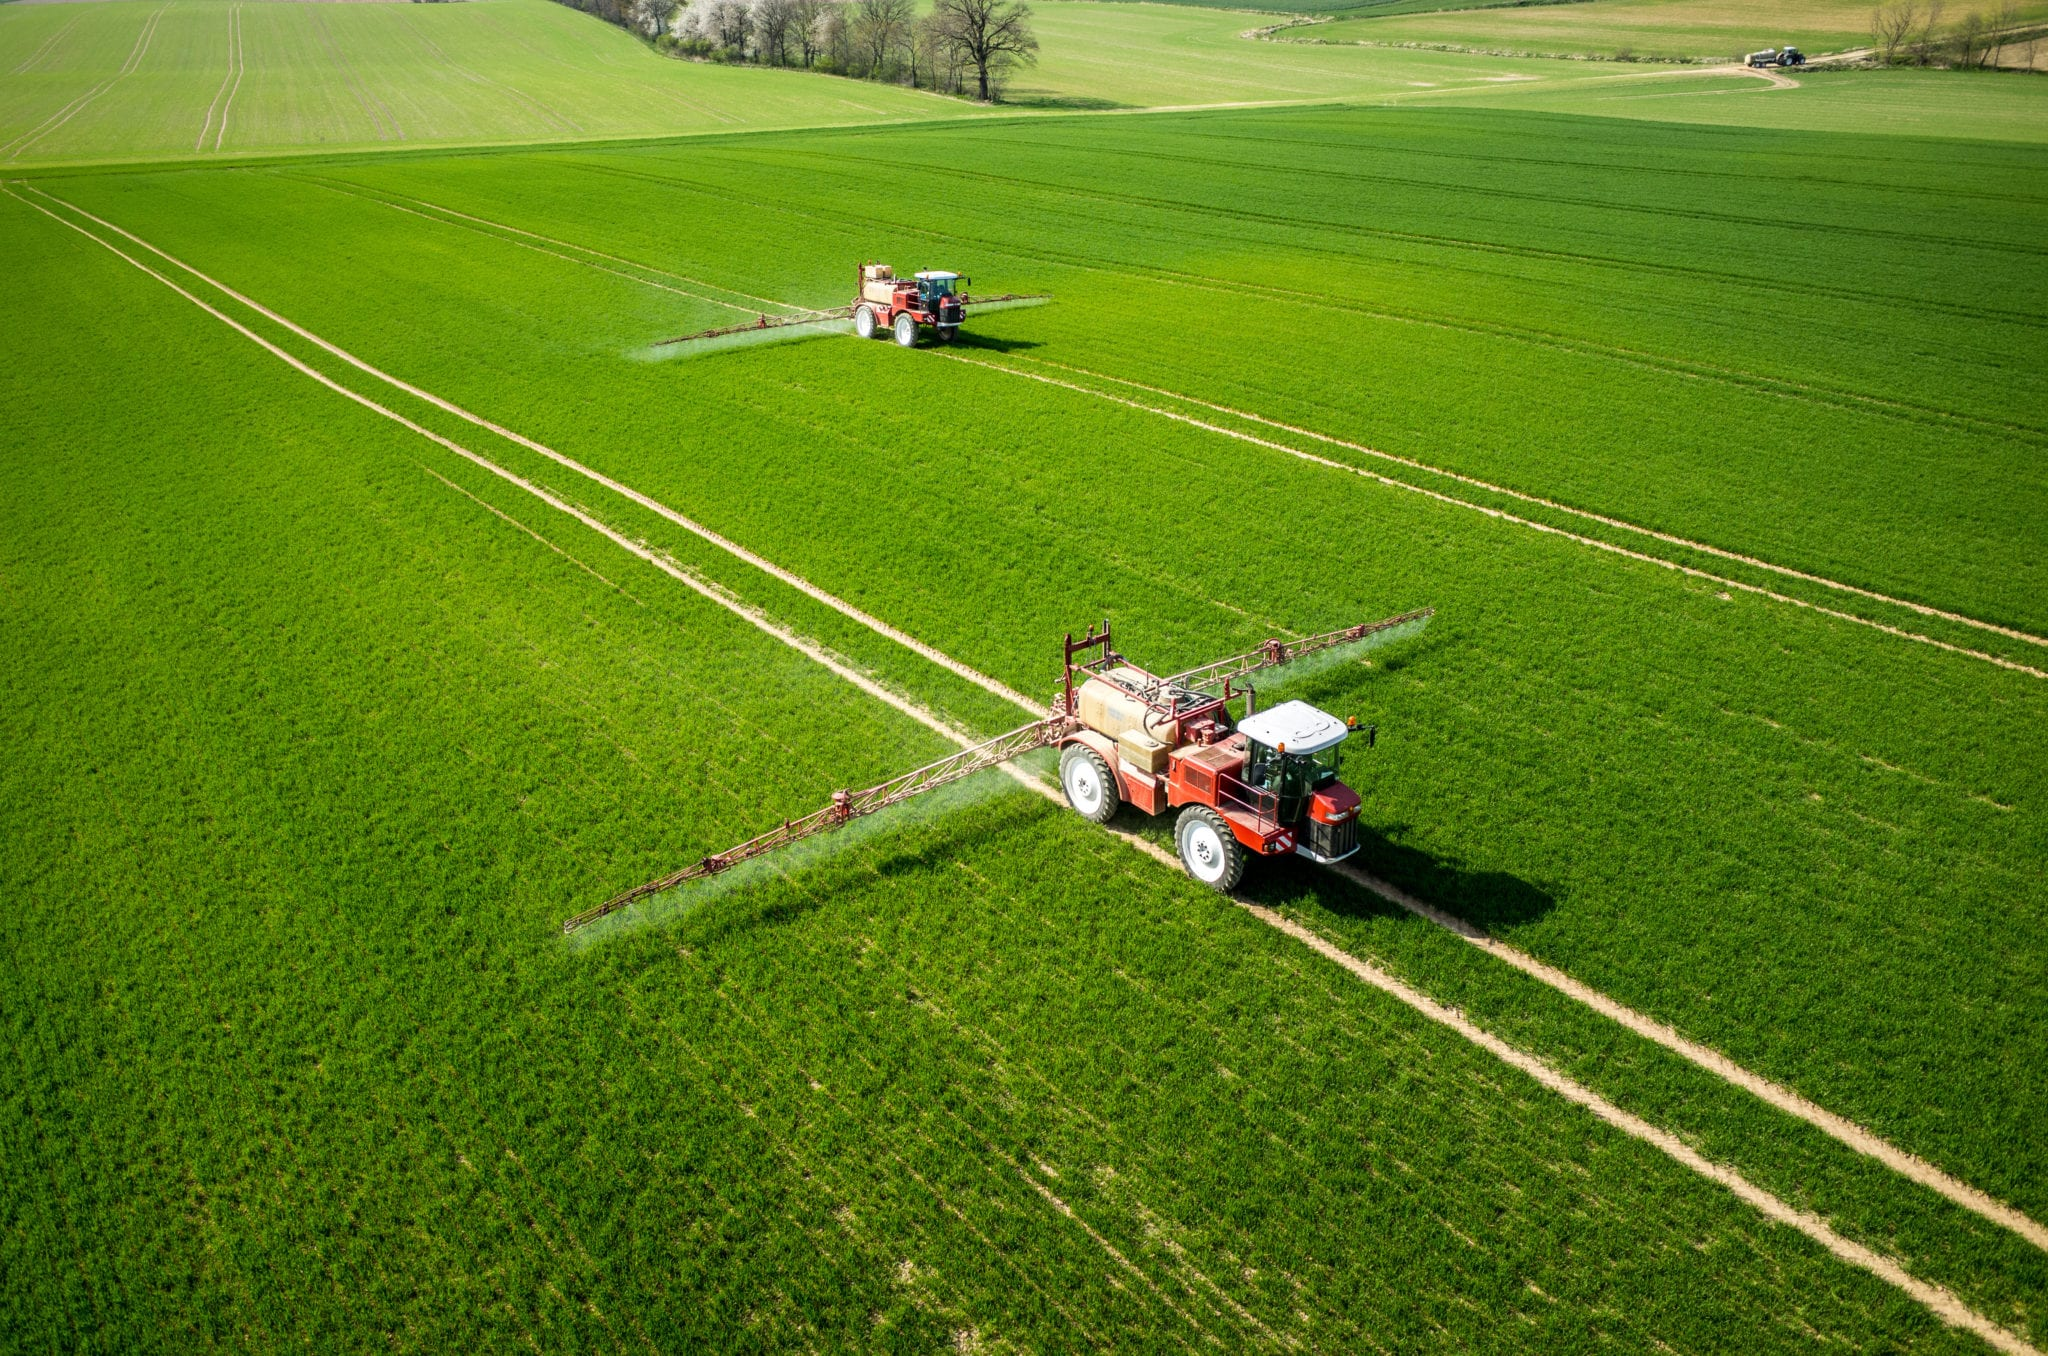 Farming Needs 5g And Not Just Lorawan And Nb Iot Says